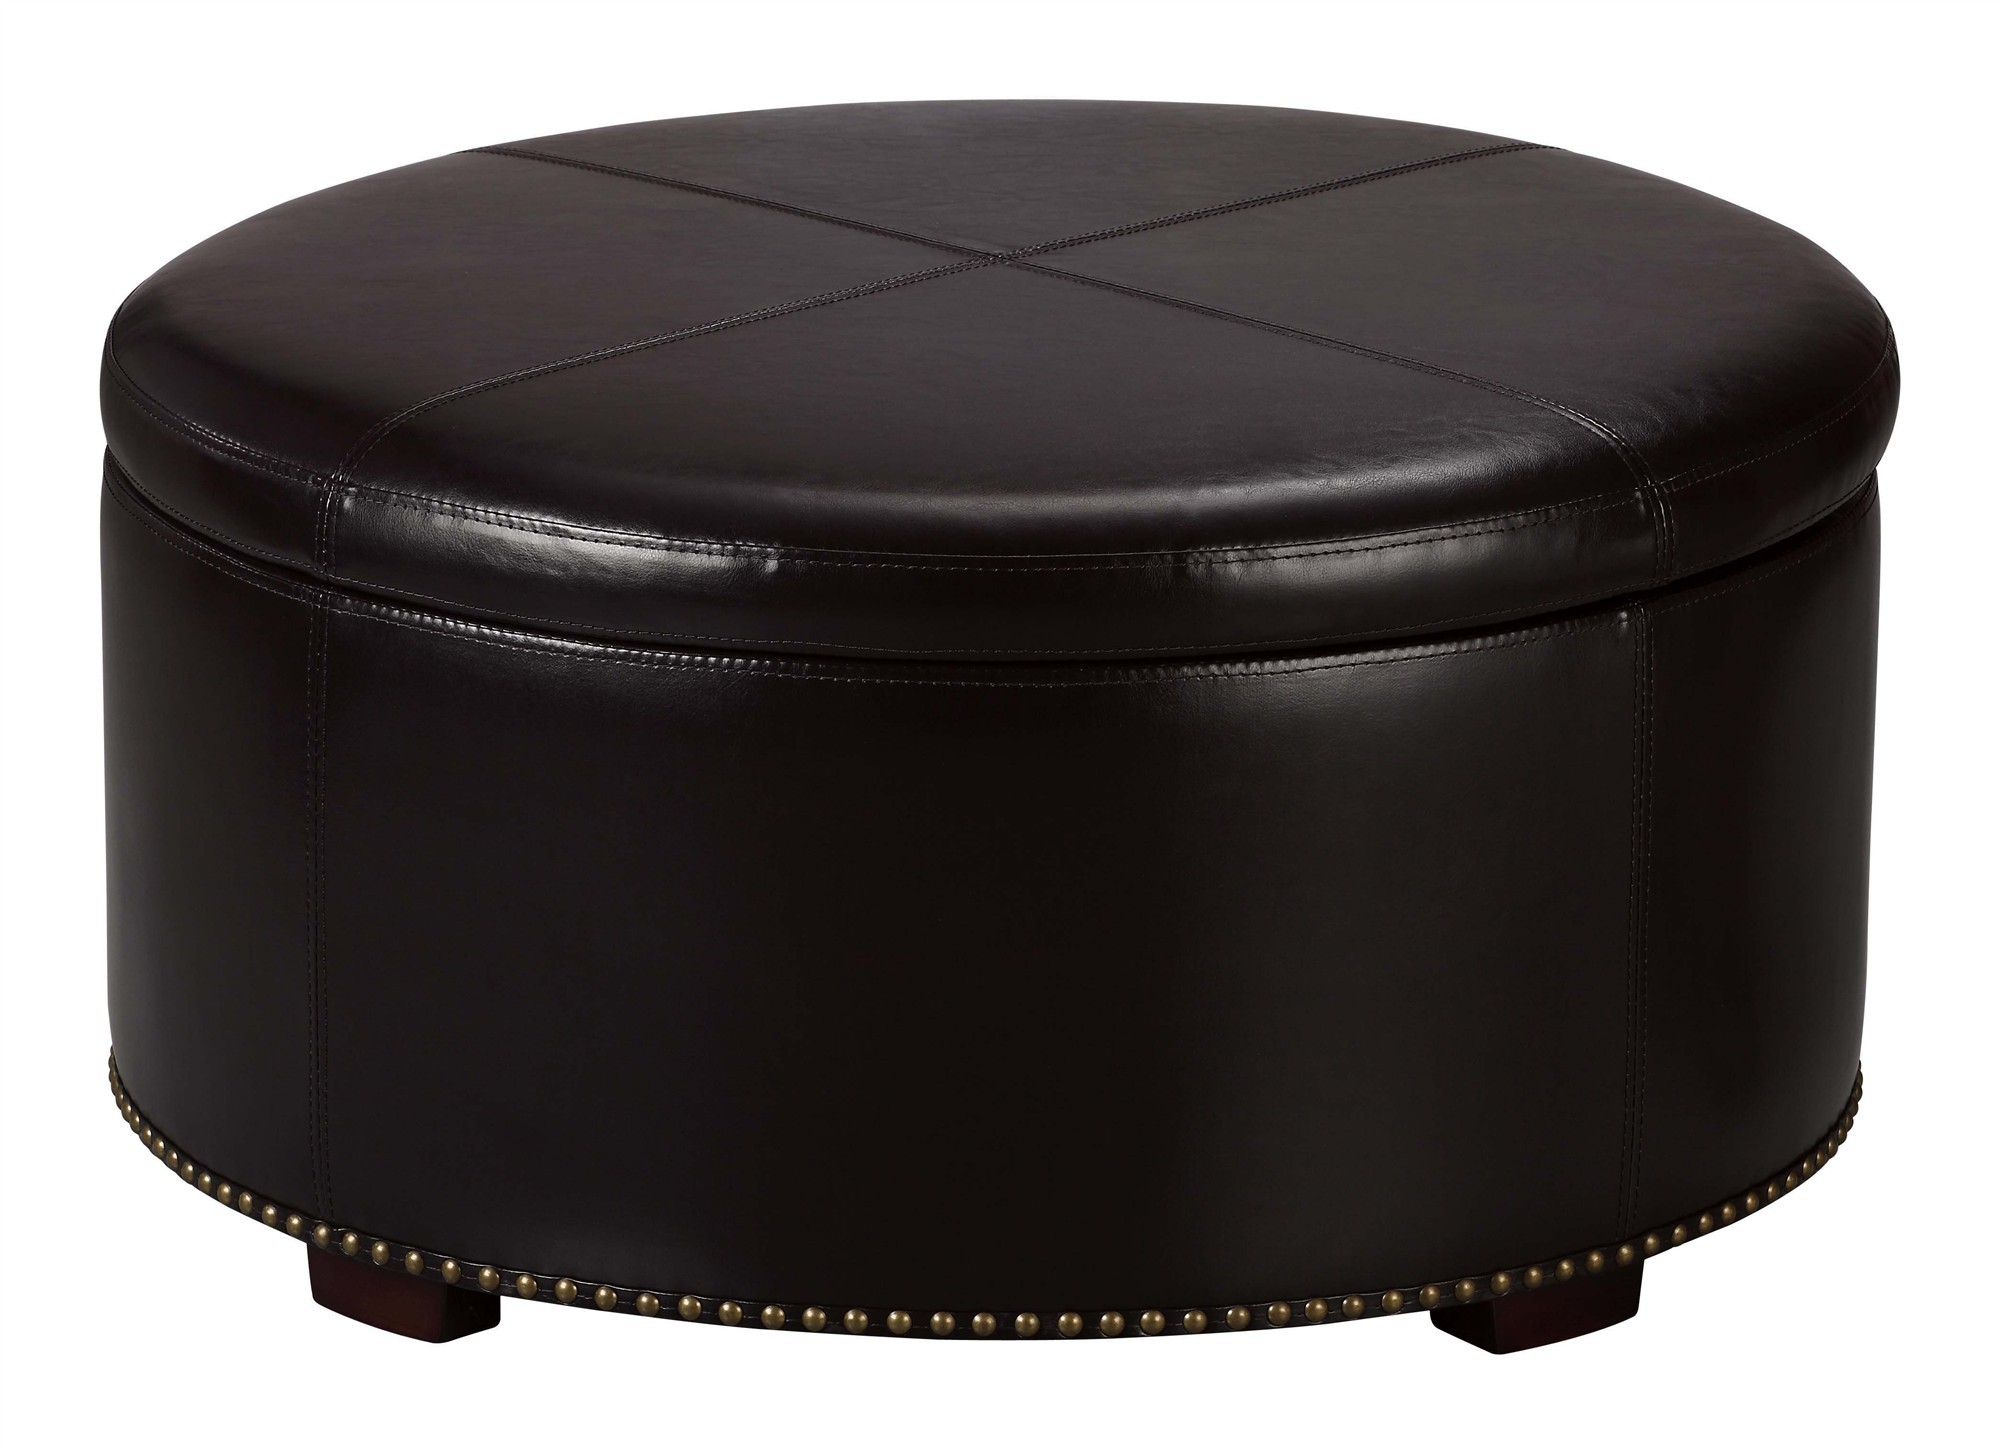 Cube Black Upholstered Living Room Ottoman Furniture Round Wooden Coffee Table With Drawers Coffee Table Drawers (Image 2 of 10)